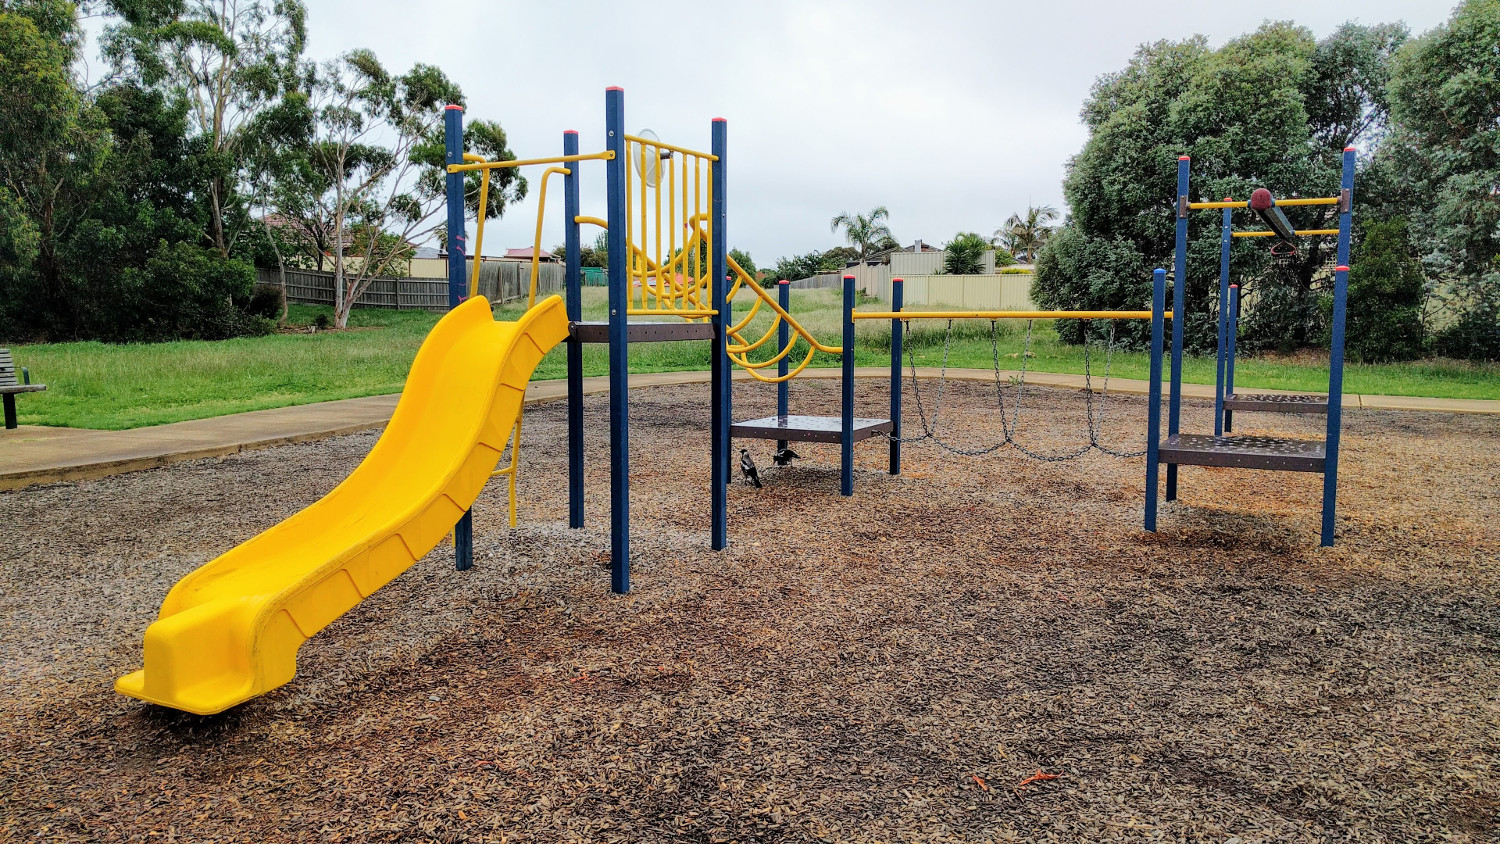 Playground-Equipment-Nov16.jpg